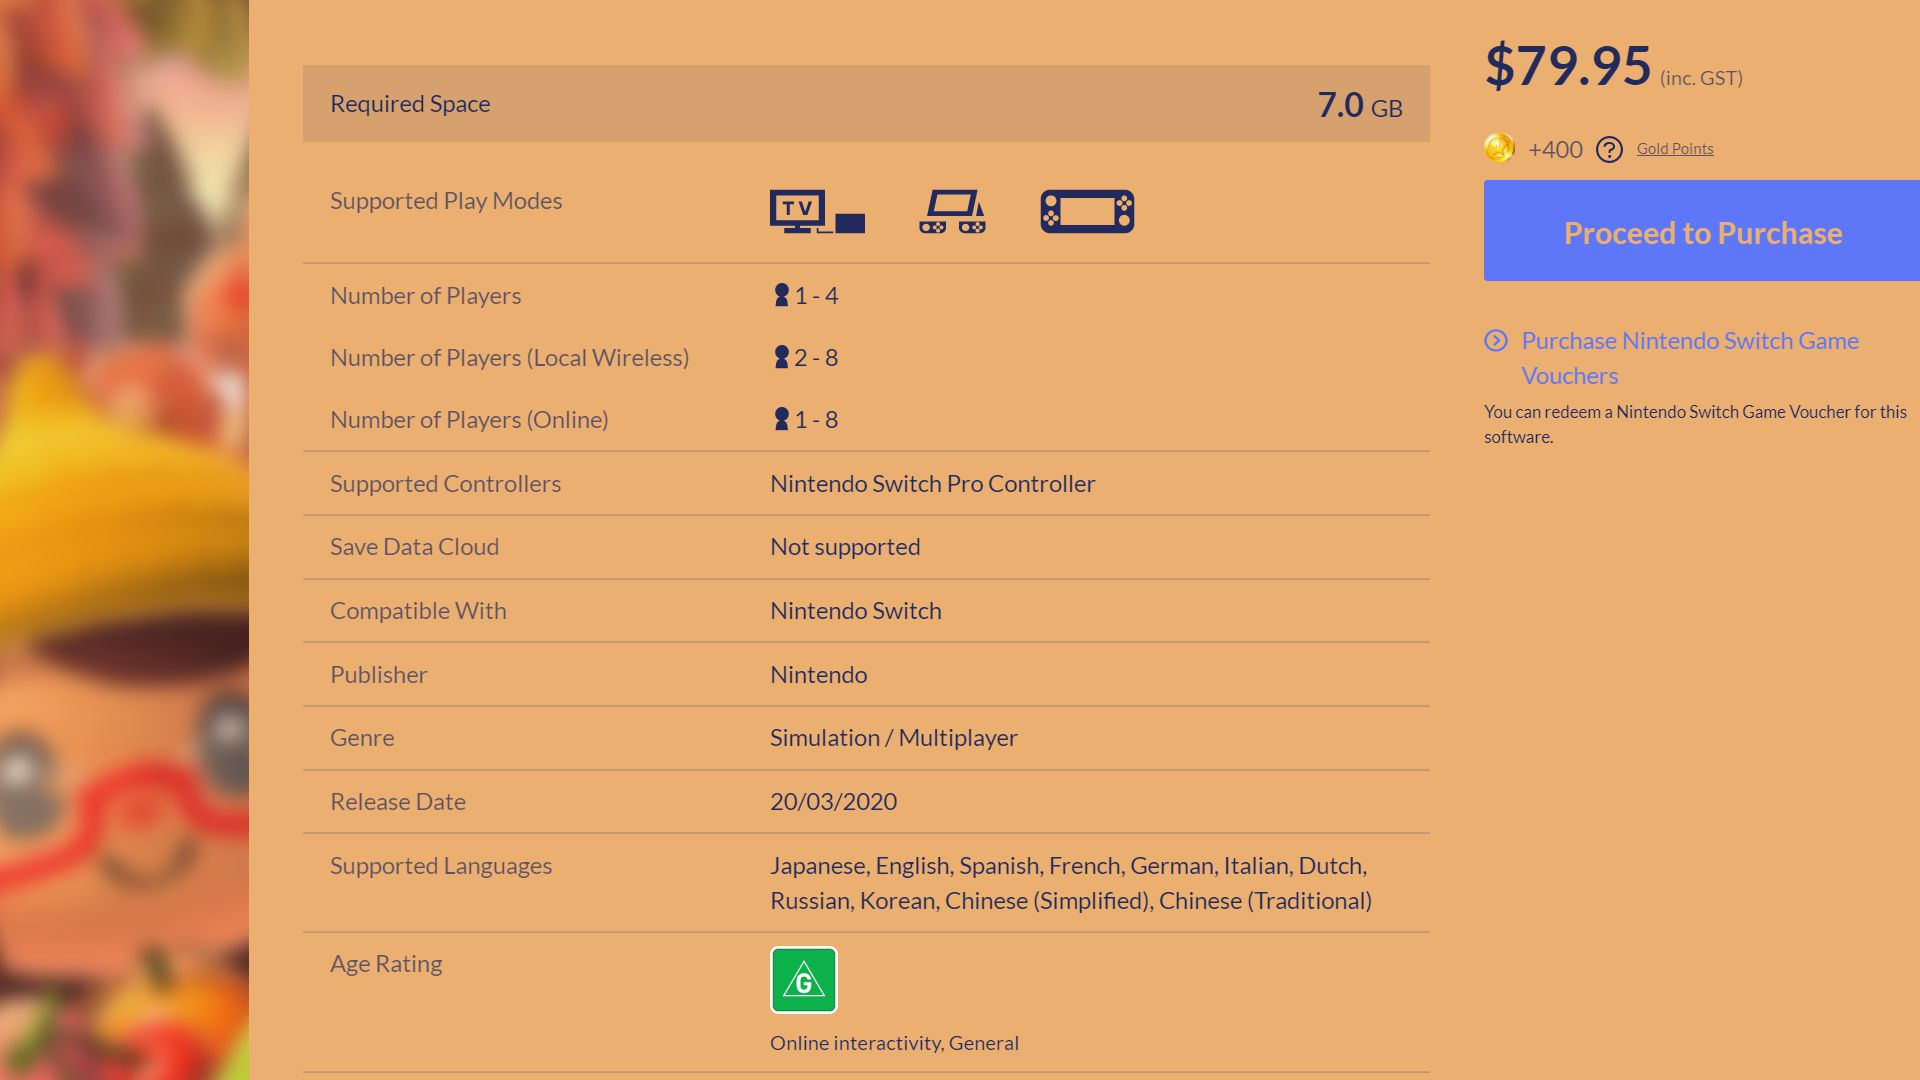 Screenshot of the official Nintendo listing for the Animal Crossing New Horizons video game.